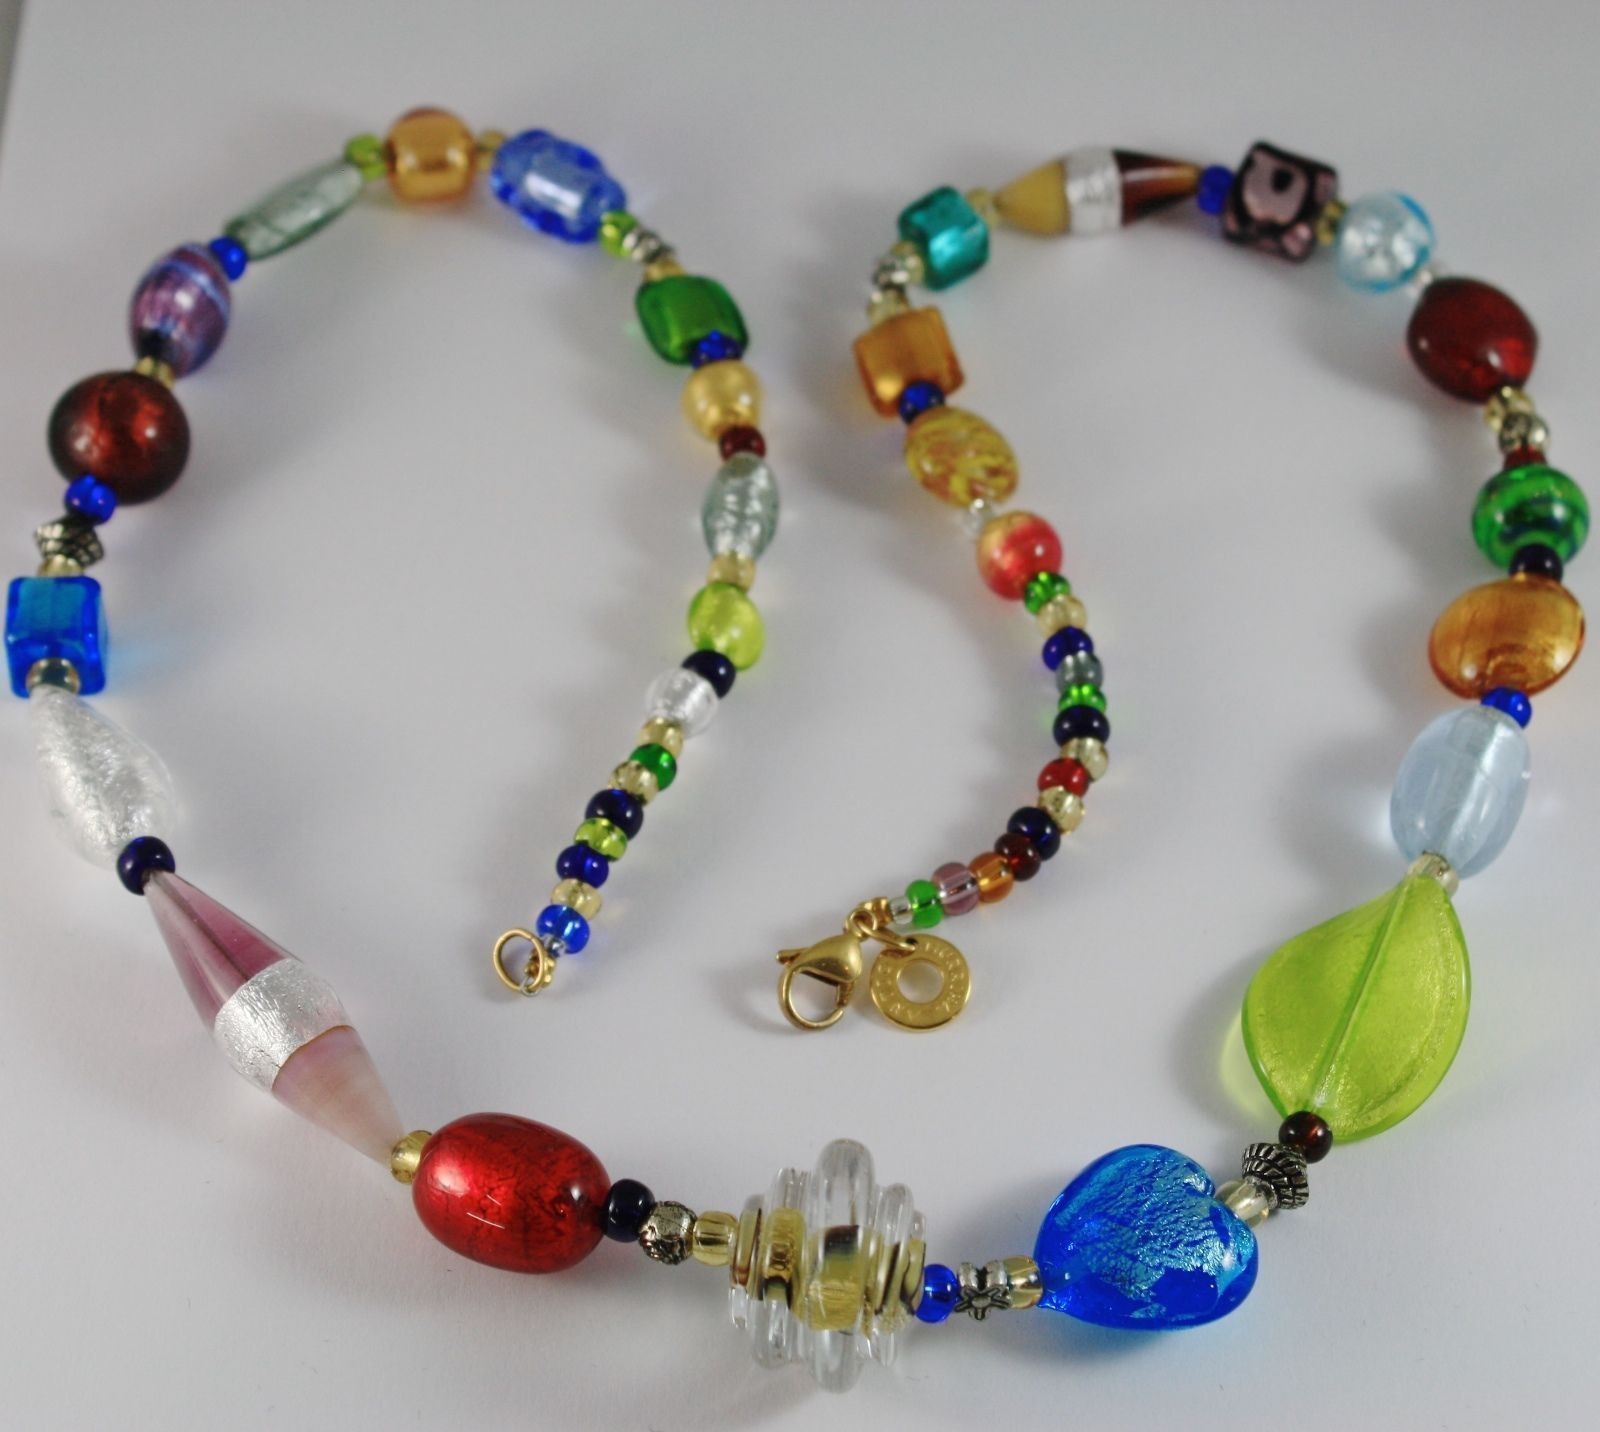 COLLANA ANTICA MURRINA VENEZIA CON VETRO DI MURANO MULTICOLORE CO268A19 72 CM